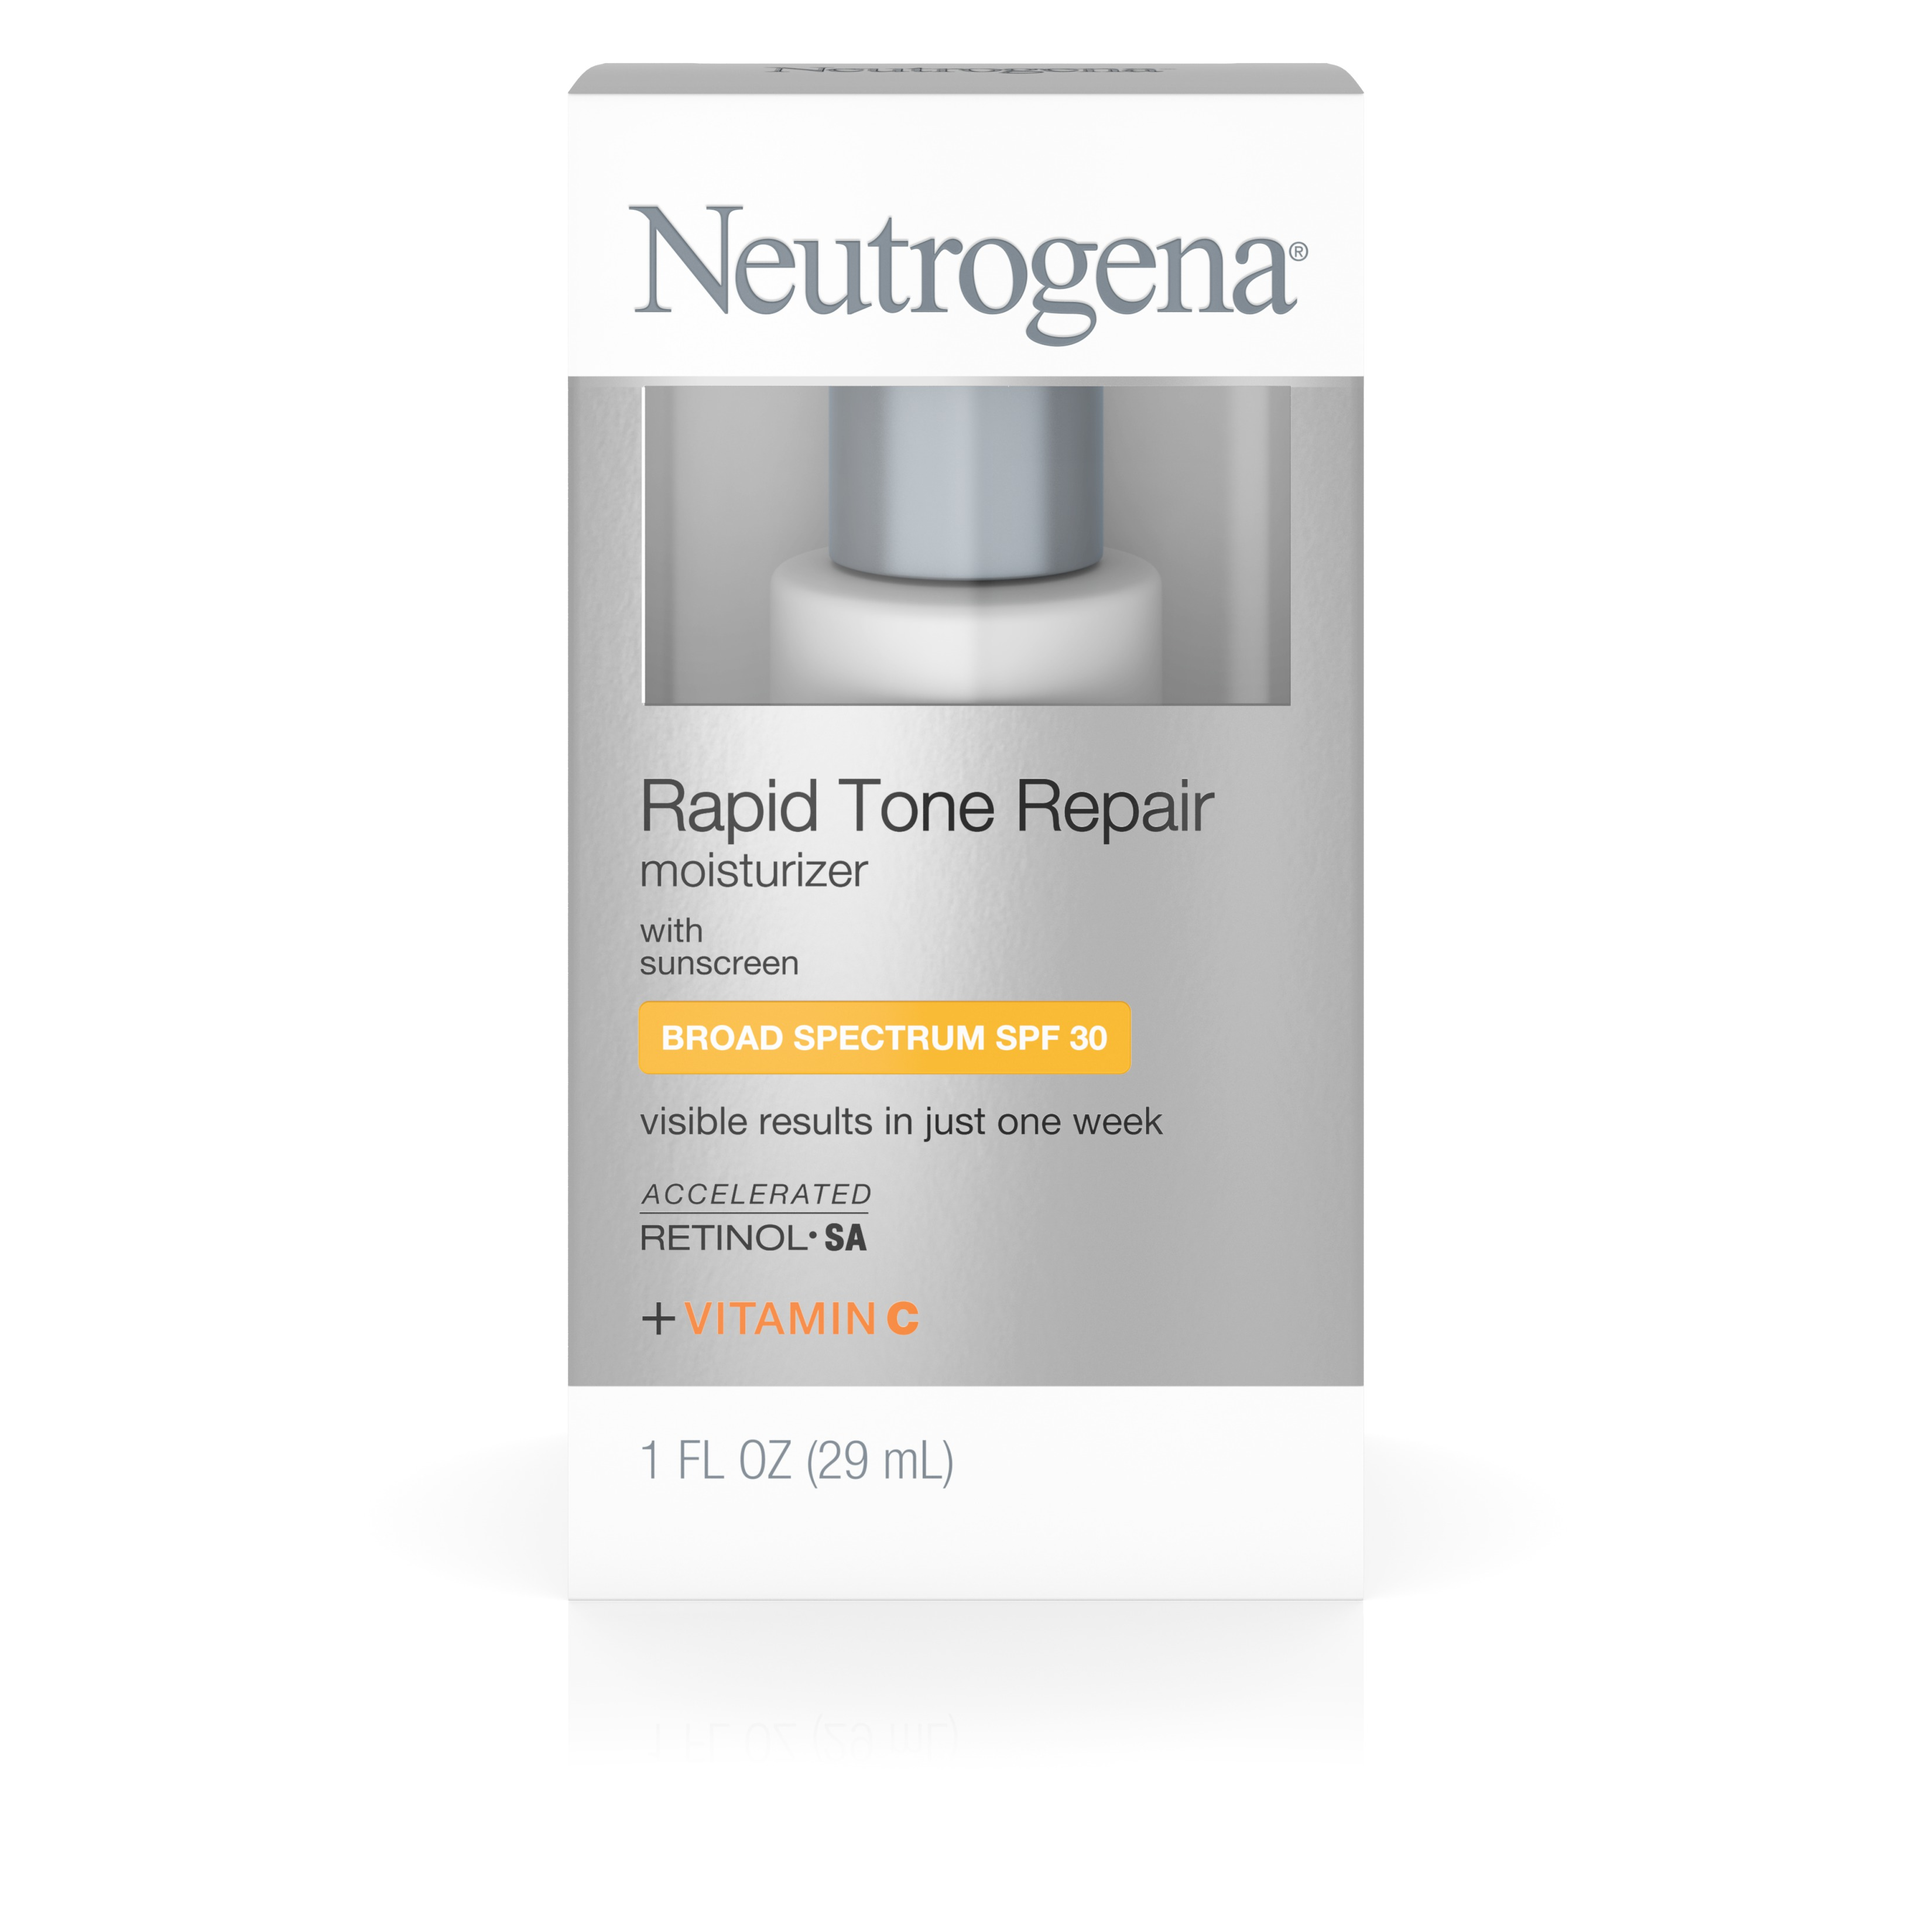 Neutrogena Rapid Tone Repair Moisturizer With Retinol, Broad Spectrum Spf 30 Sunscreen,  Travel Size 1 Fl. Oz. - Walmart.com